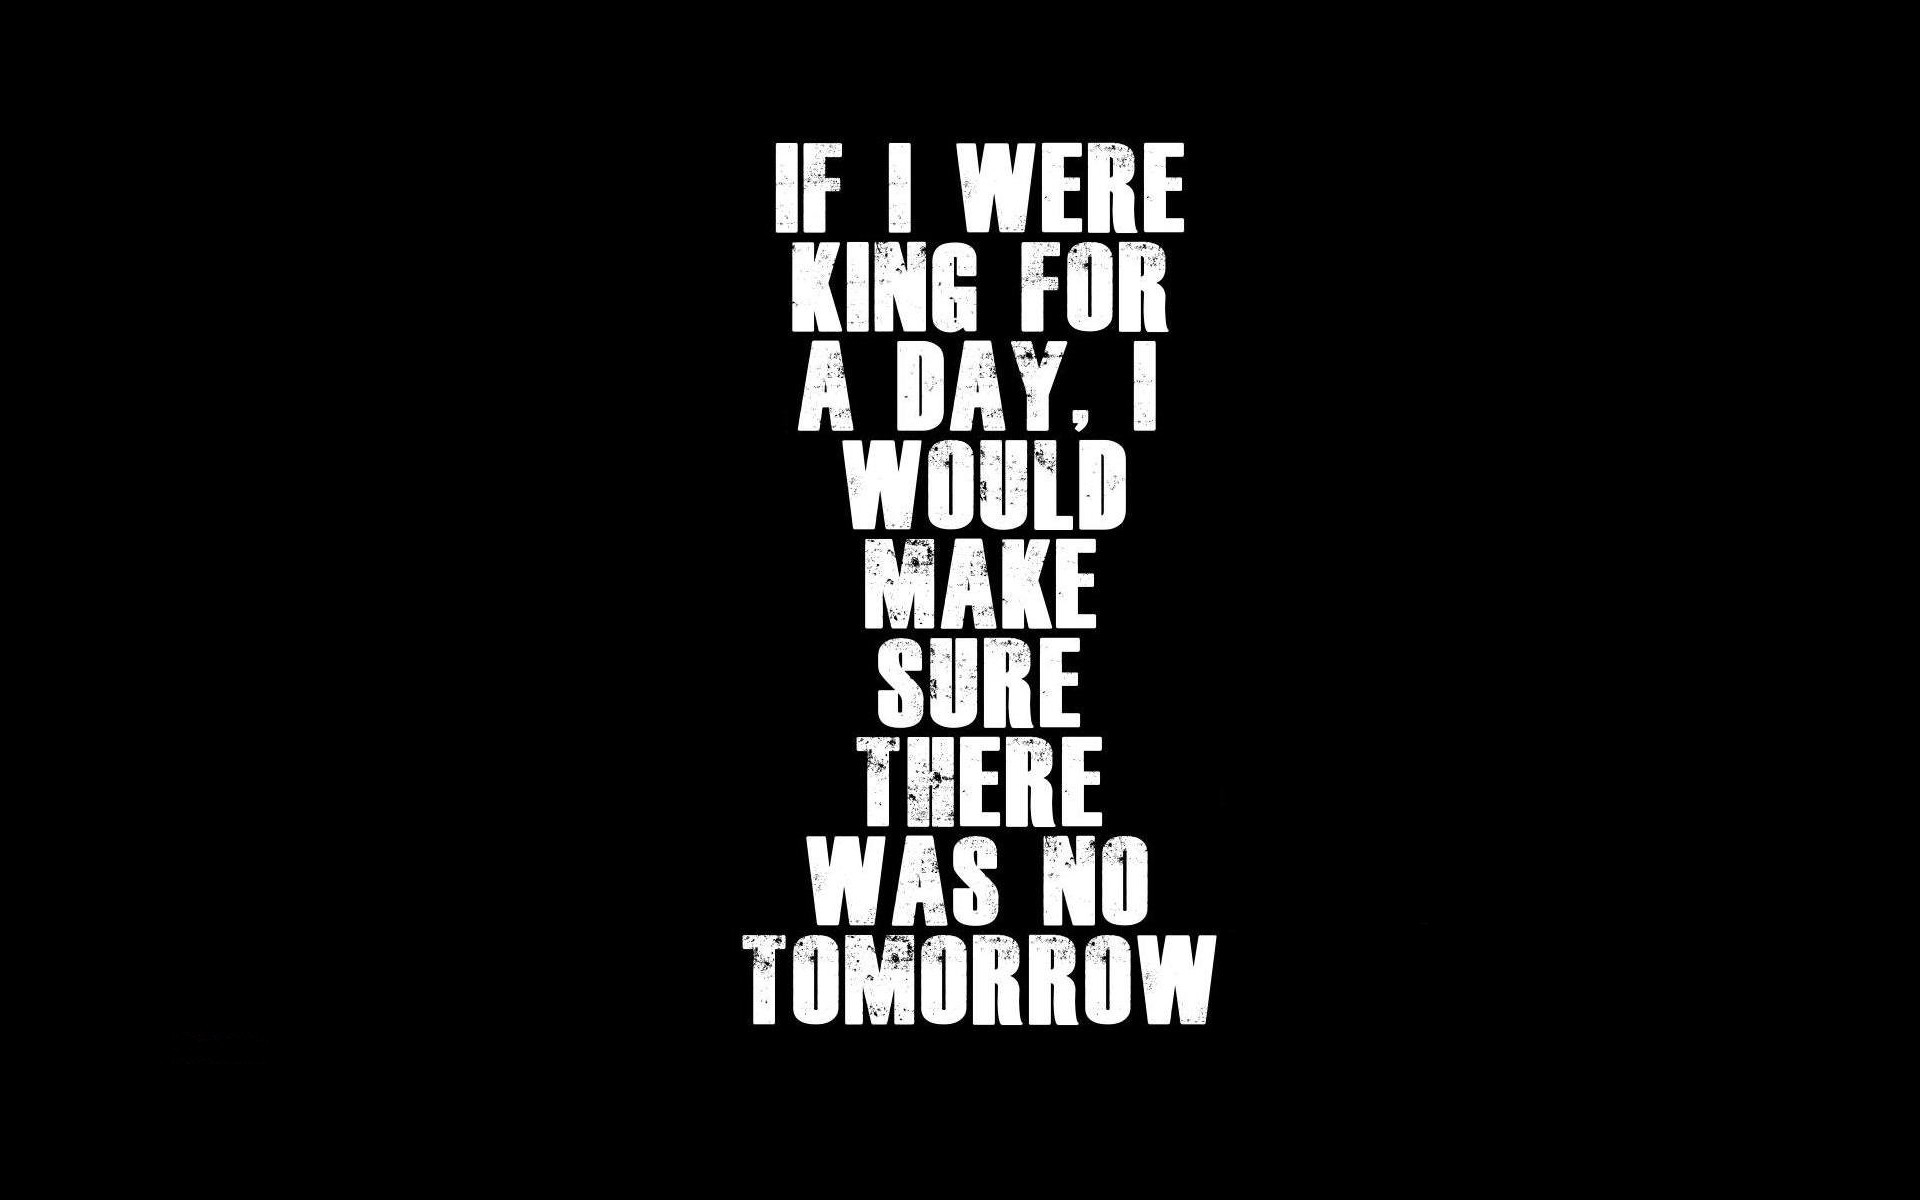 Black And White Minimalistic King Typography Text Only Black Background Wallpaper 1920x1200 12112 Wallpaperup